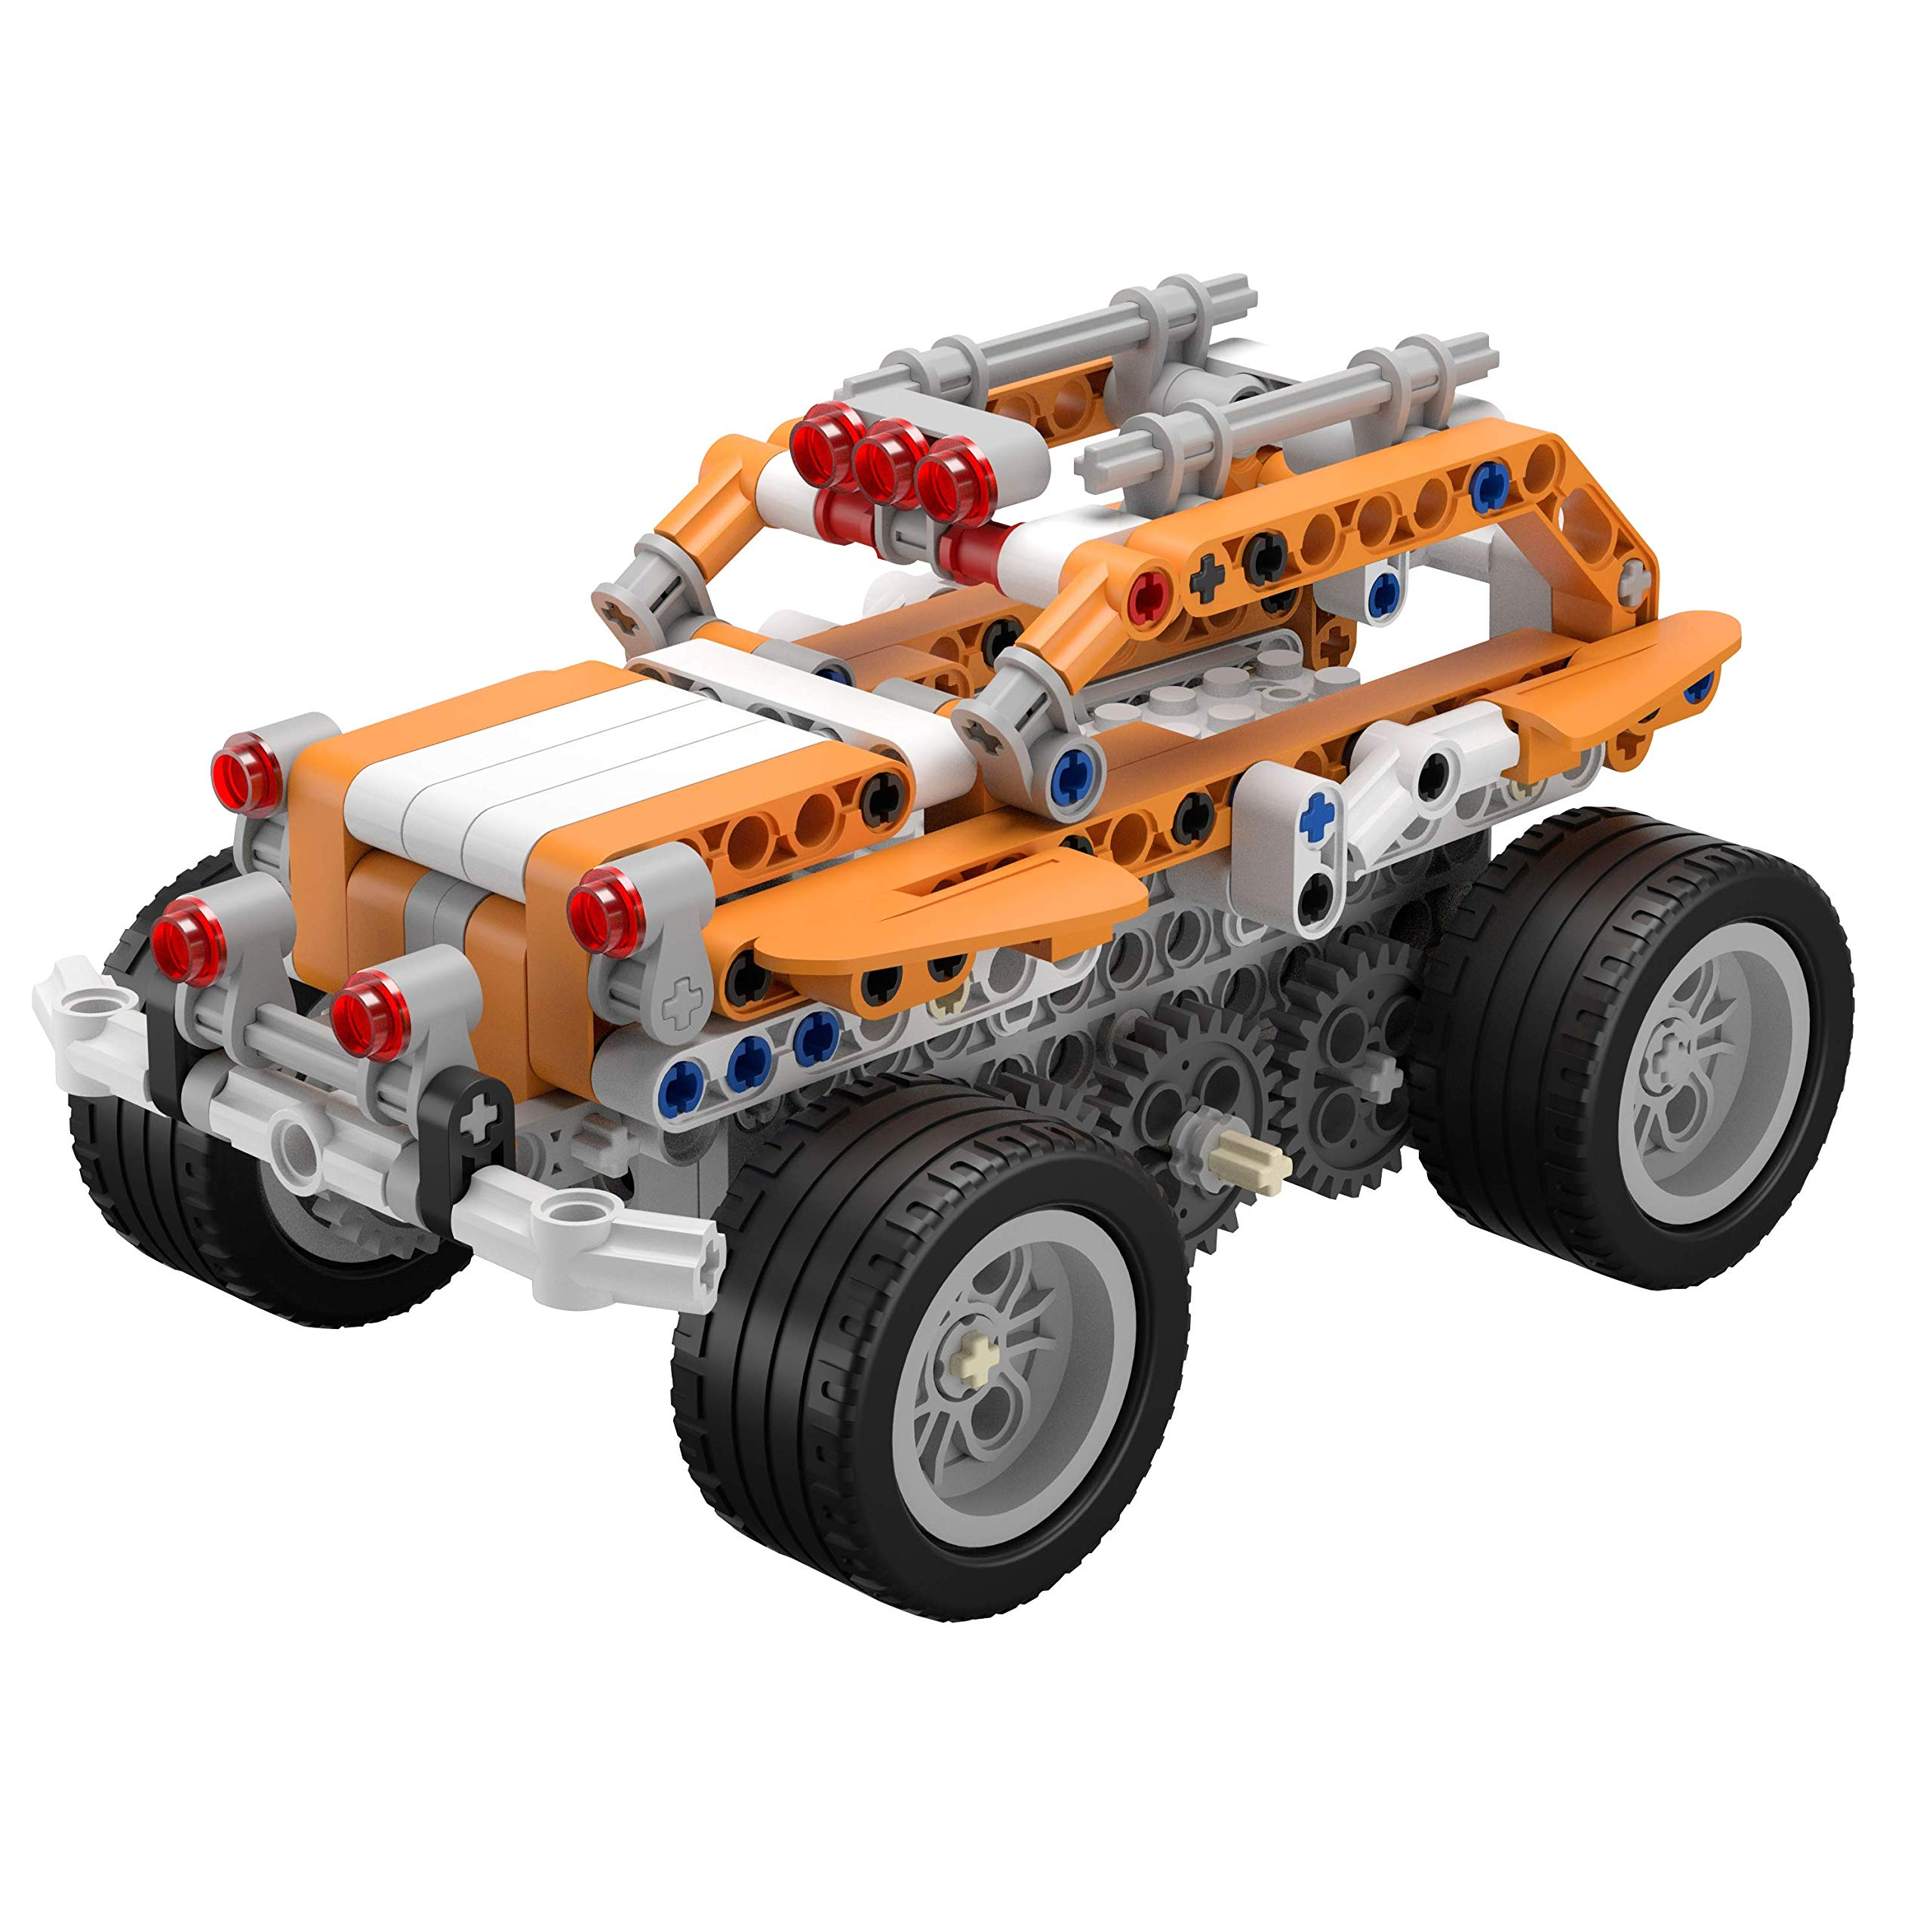 Apitor SuperBot, Educational Building Block 18 in 1 Robot Kit, APP Remote Control, STEM Coding Learning Toy, Ideal Gift for Kids 8+, Compatible with Major Building Block Toys (400+ Pieces) by Apitor Technology Co., Ltd. (Image #1)